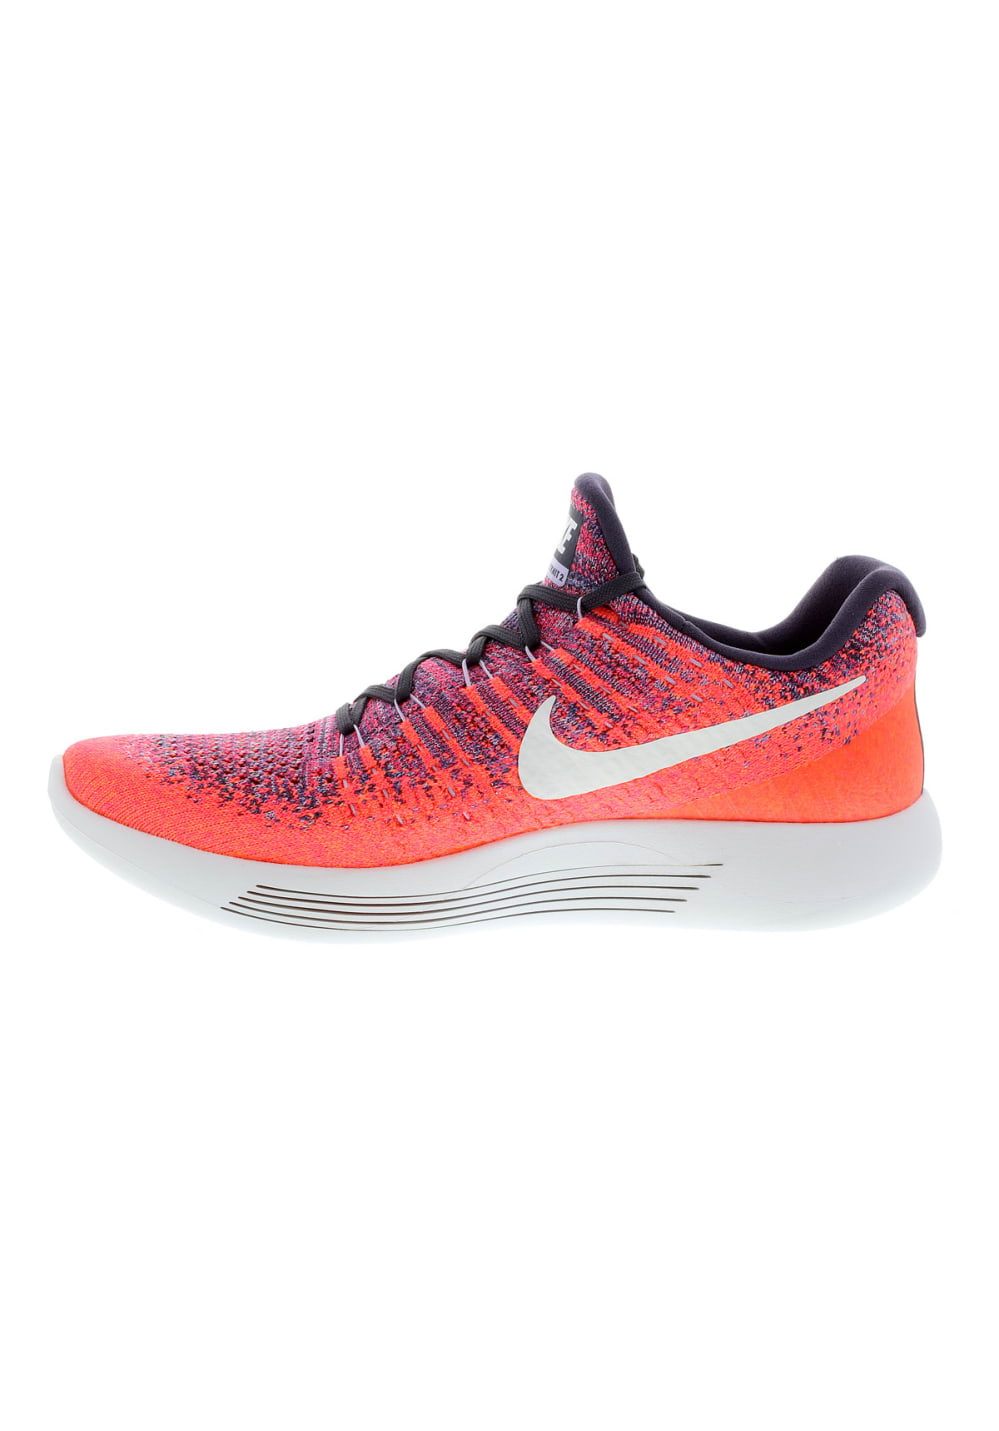 Running Chaussures Lunarepic Nike Low Pour Rose Femme 2 Flyknit CwHU7nc6aq